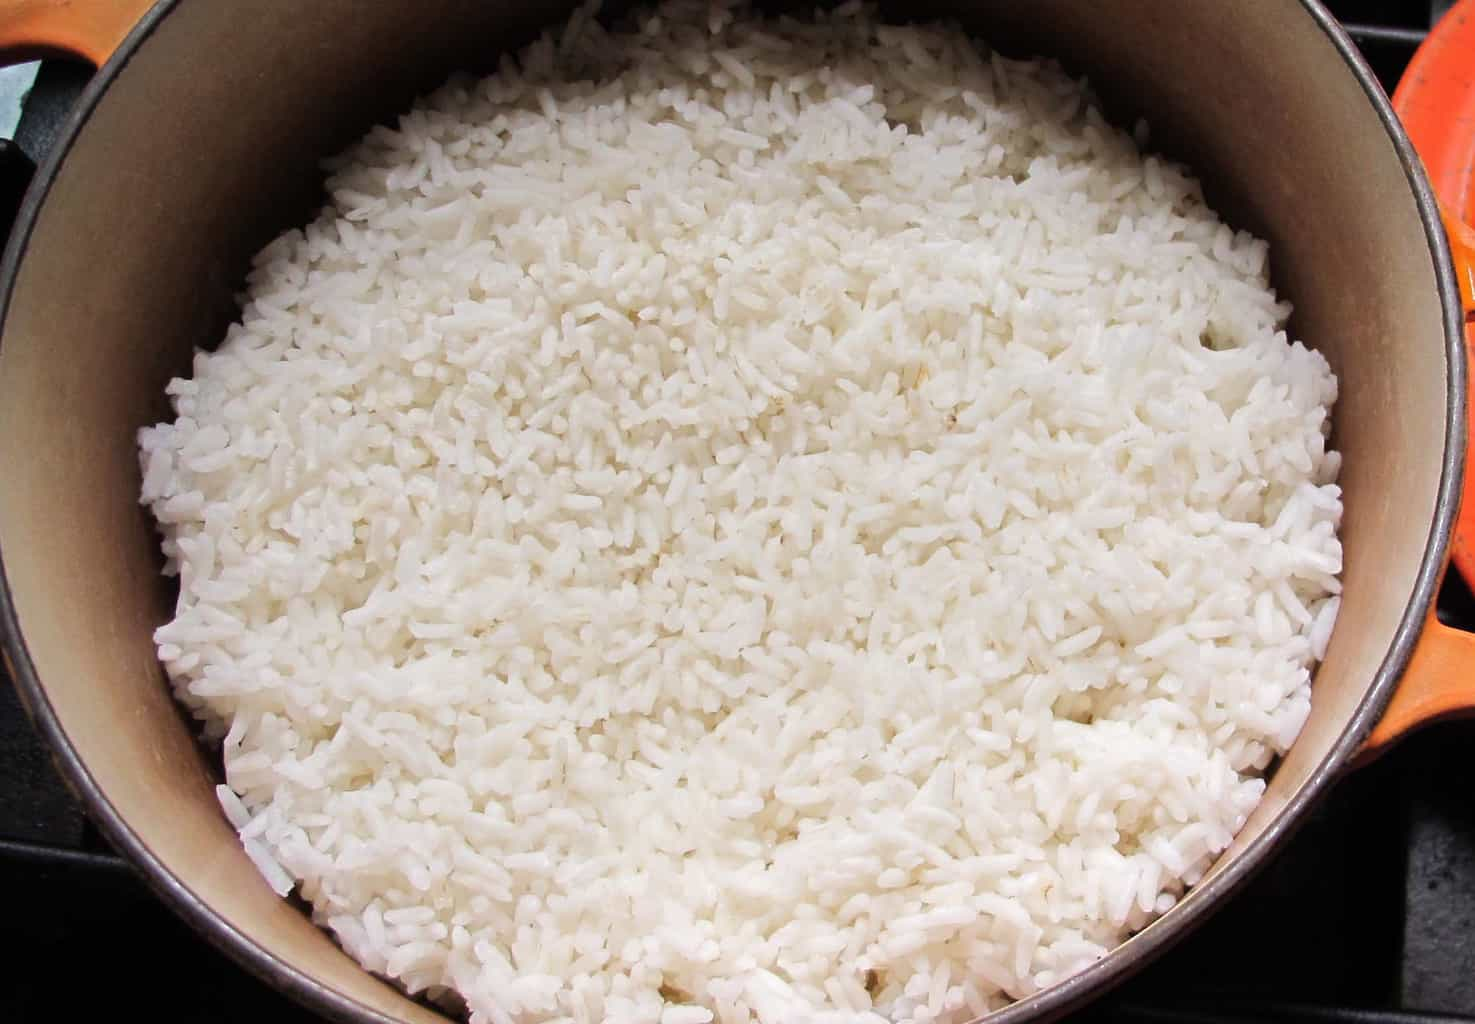 How Long Can You Leave Cooked Rice Unrefrigerated